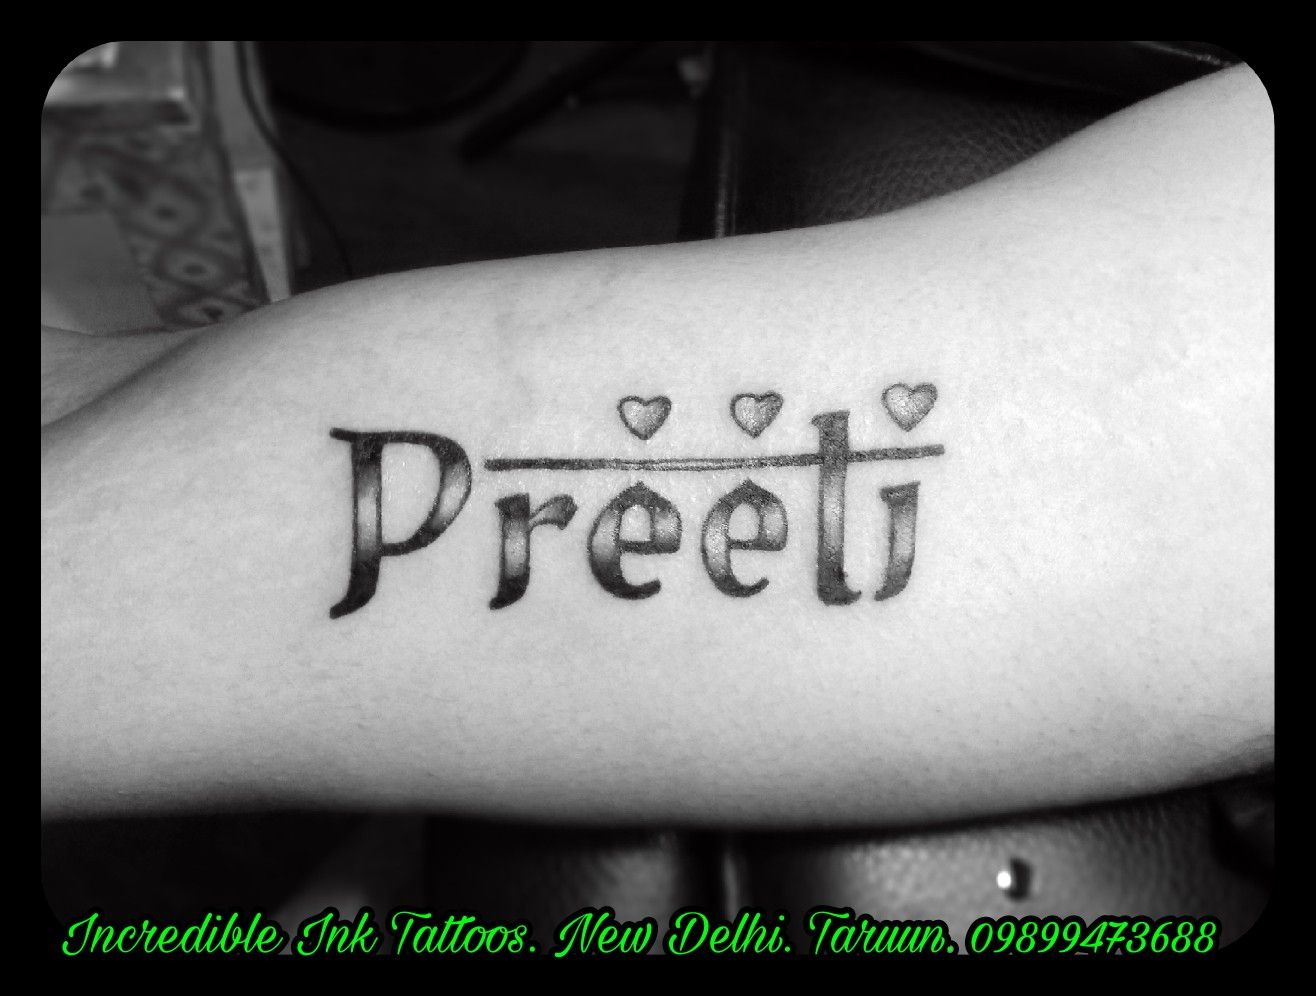 Preeti Name Tattoo Preeti Name Tattoo Call 09899473688 Name Tattoos Name Tattoo Tattoos